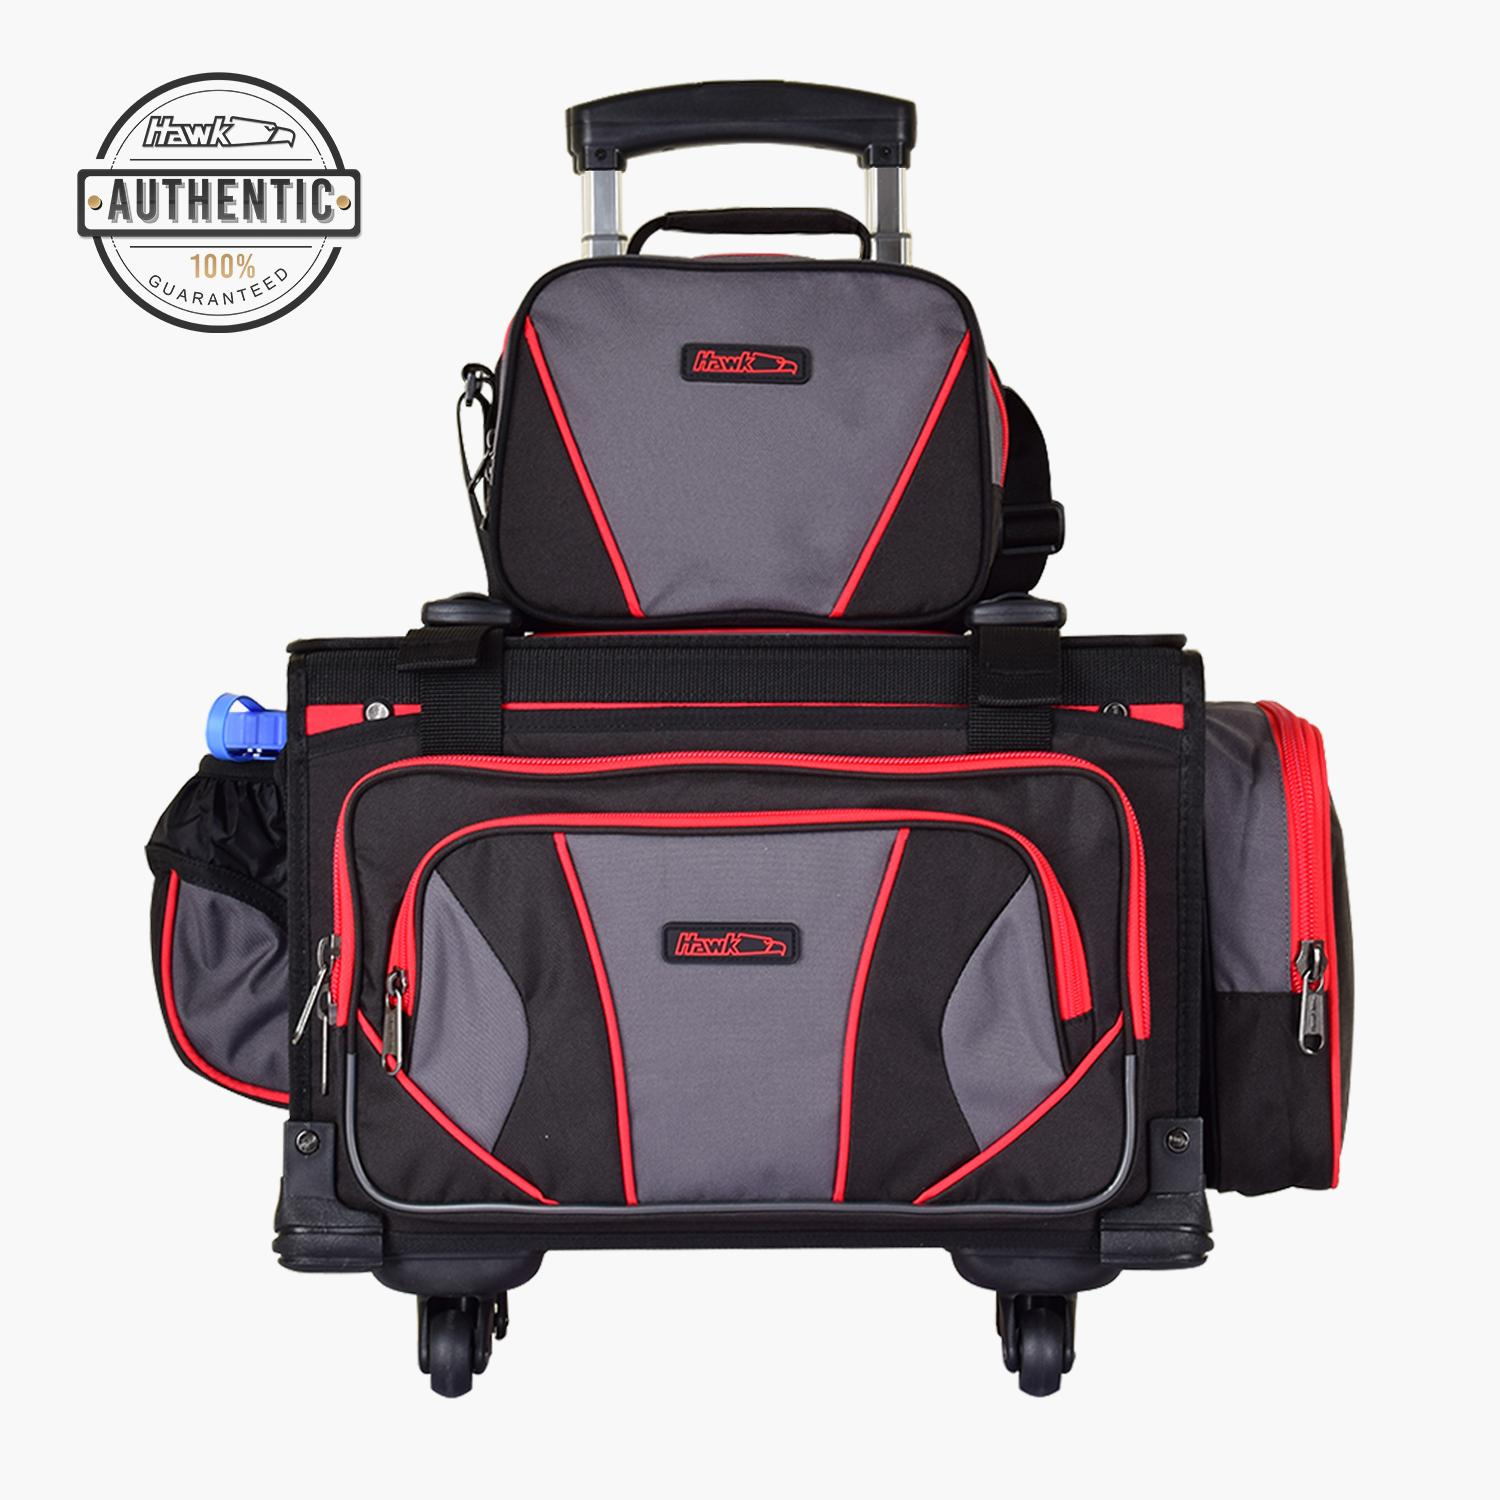 816ba3f2f6 Luggage for sale - Luggage Bag online brands, prices & reviews in ...